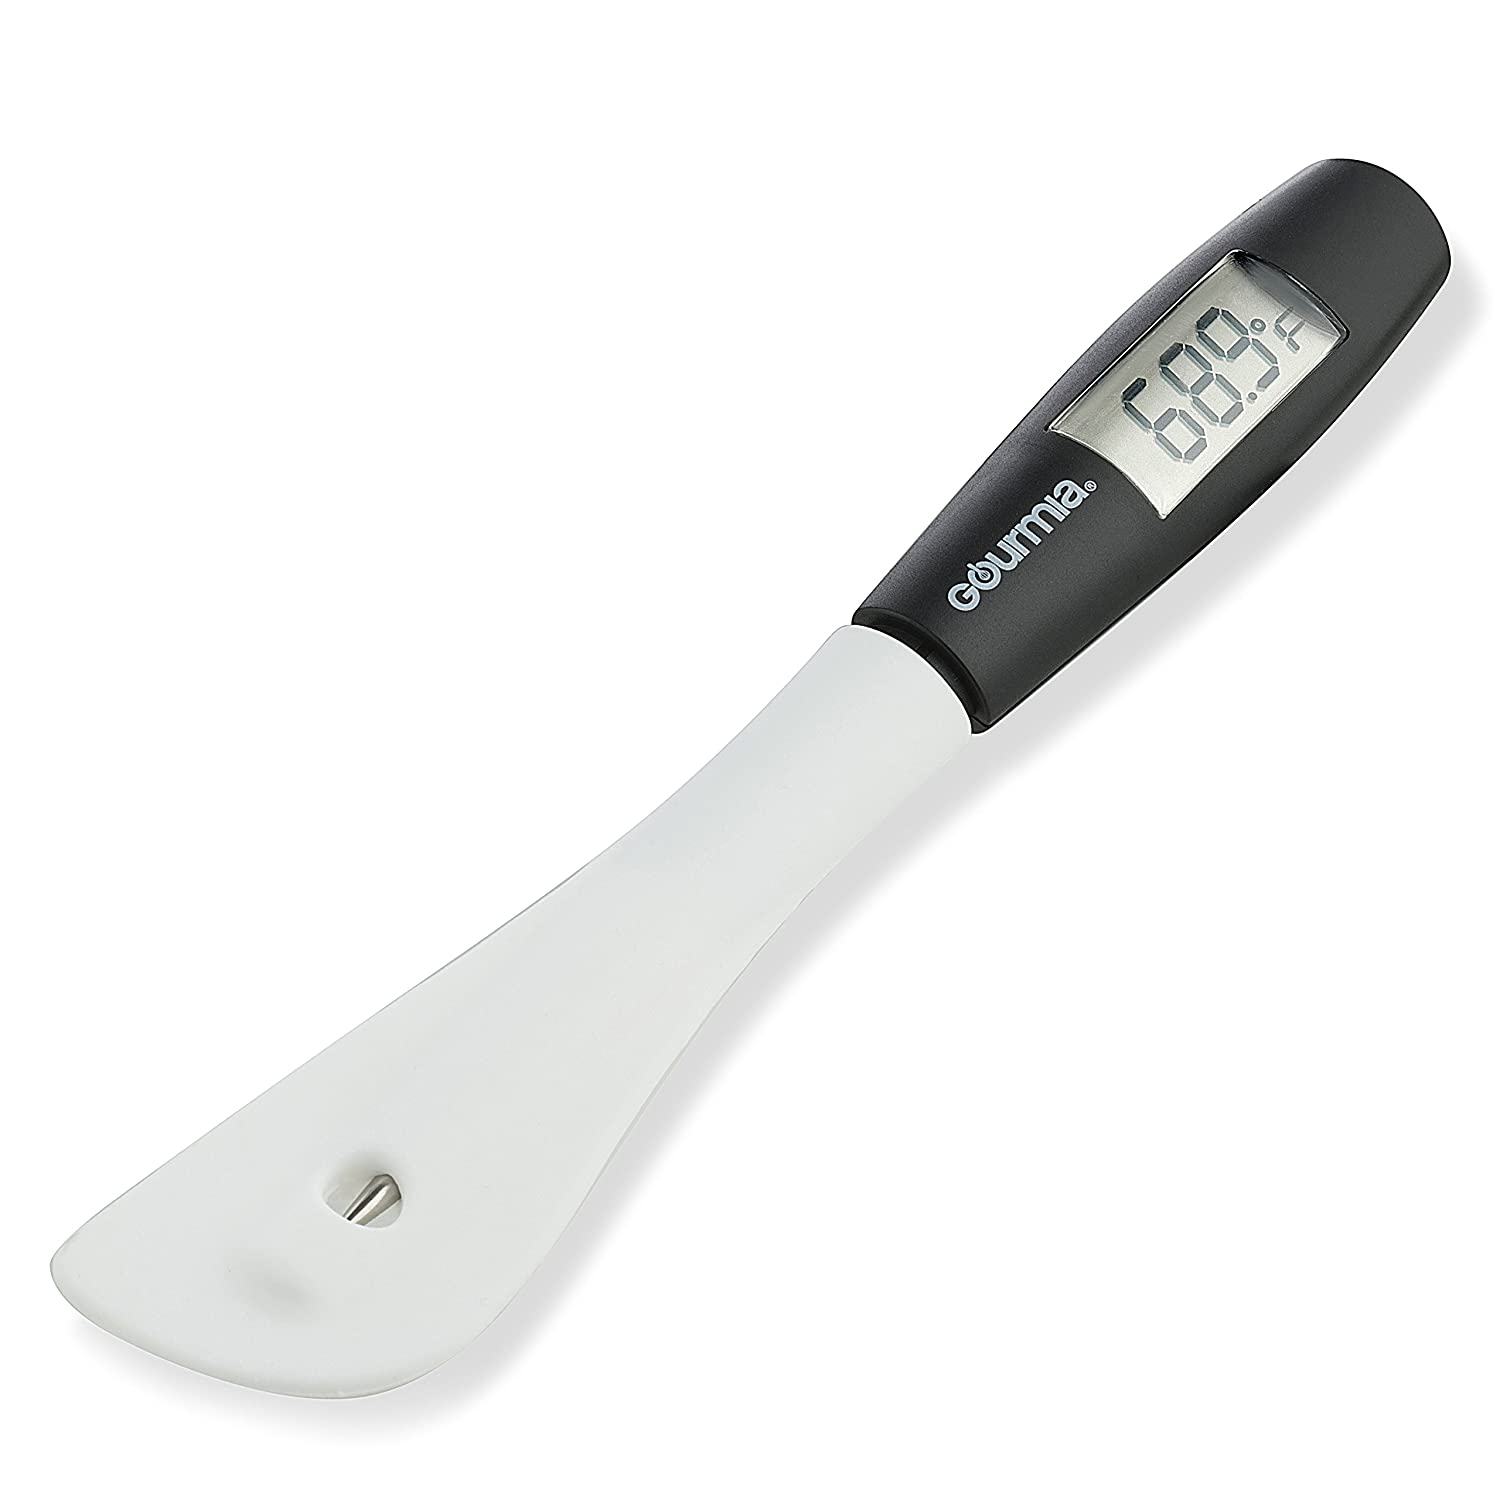 Gourmia GTH9180 Digital Spatula Thermometer Cooking & Candy Temperature Reader & Stirrer in